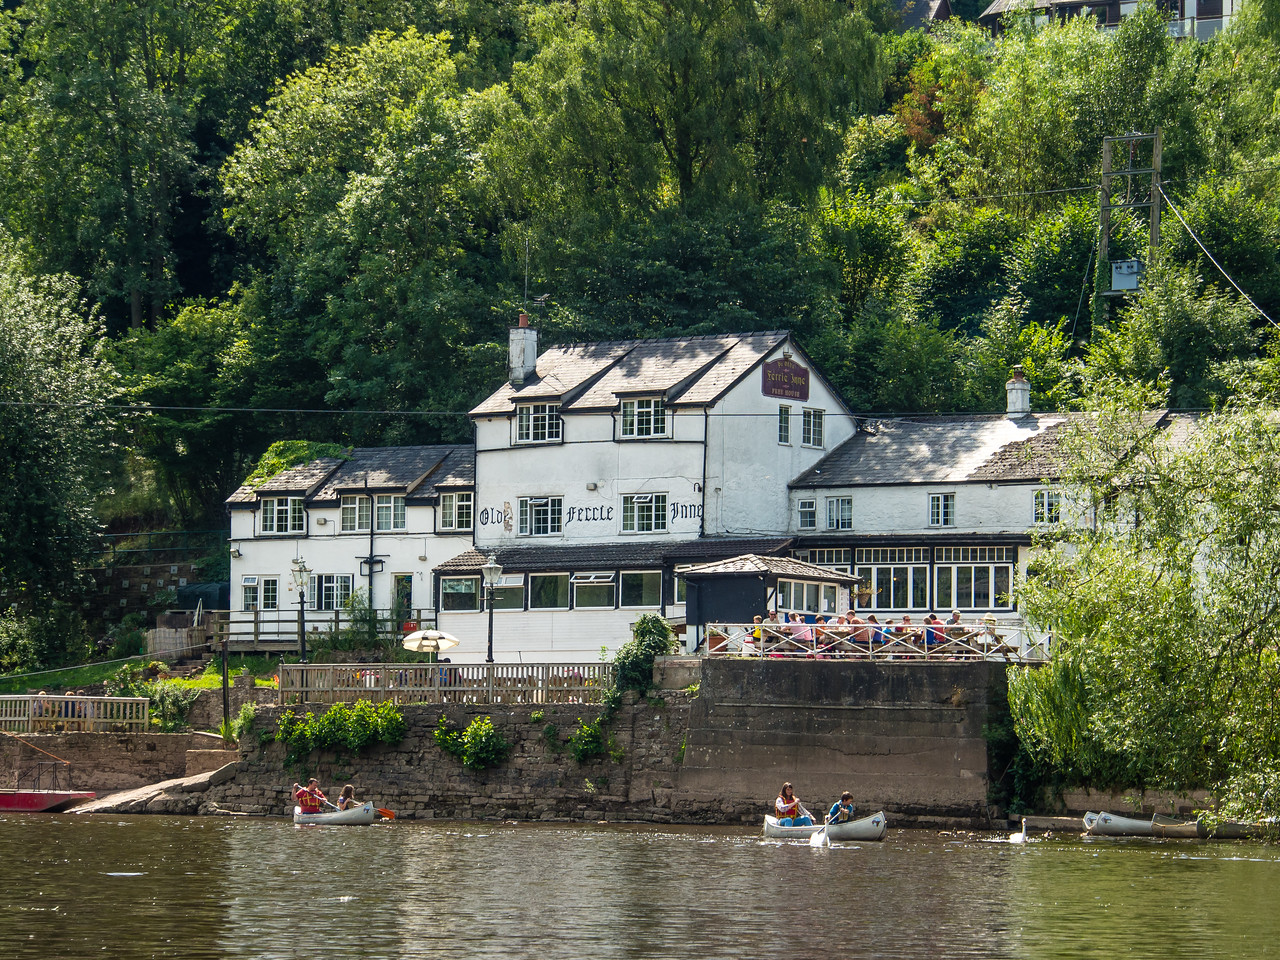 On the River Wye